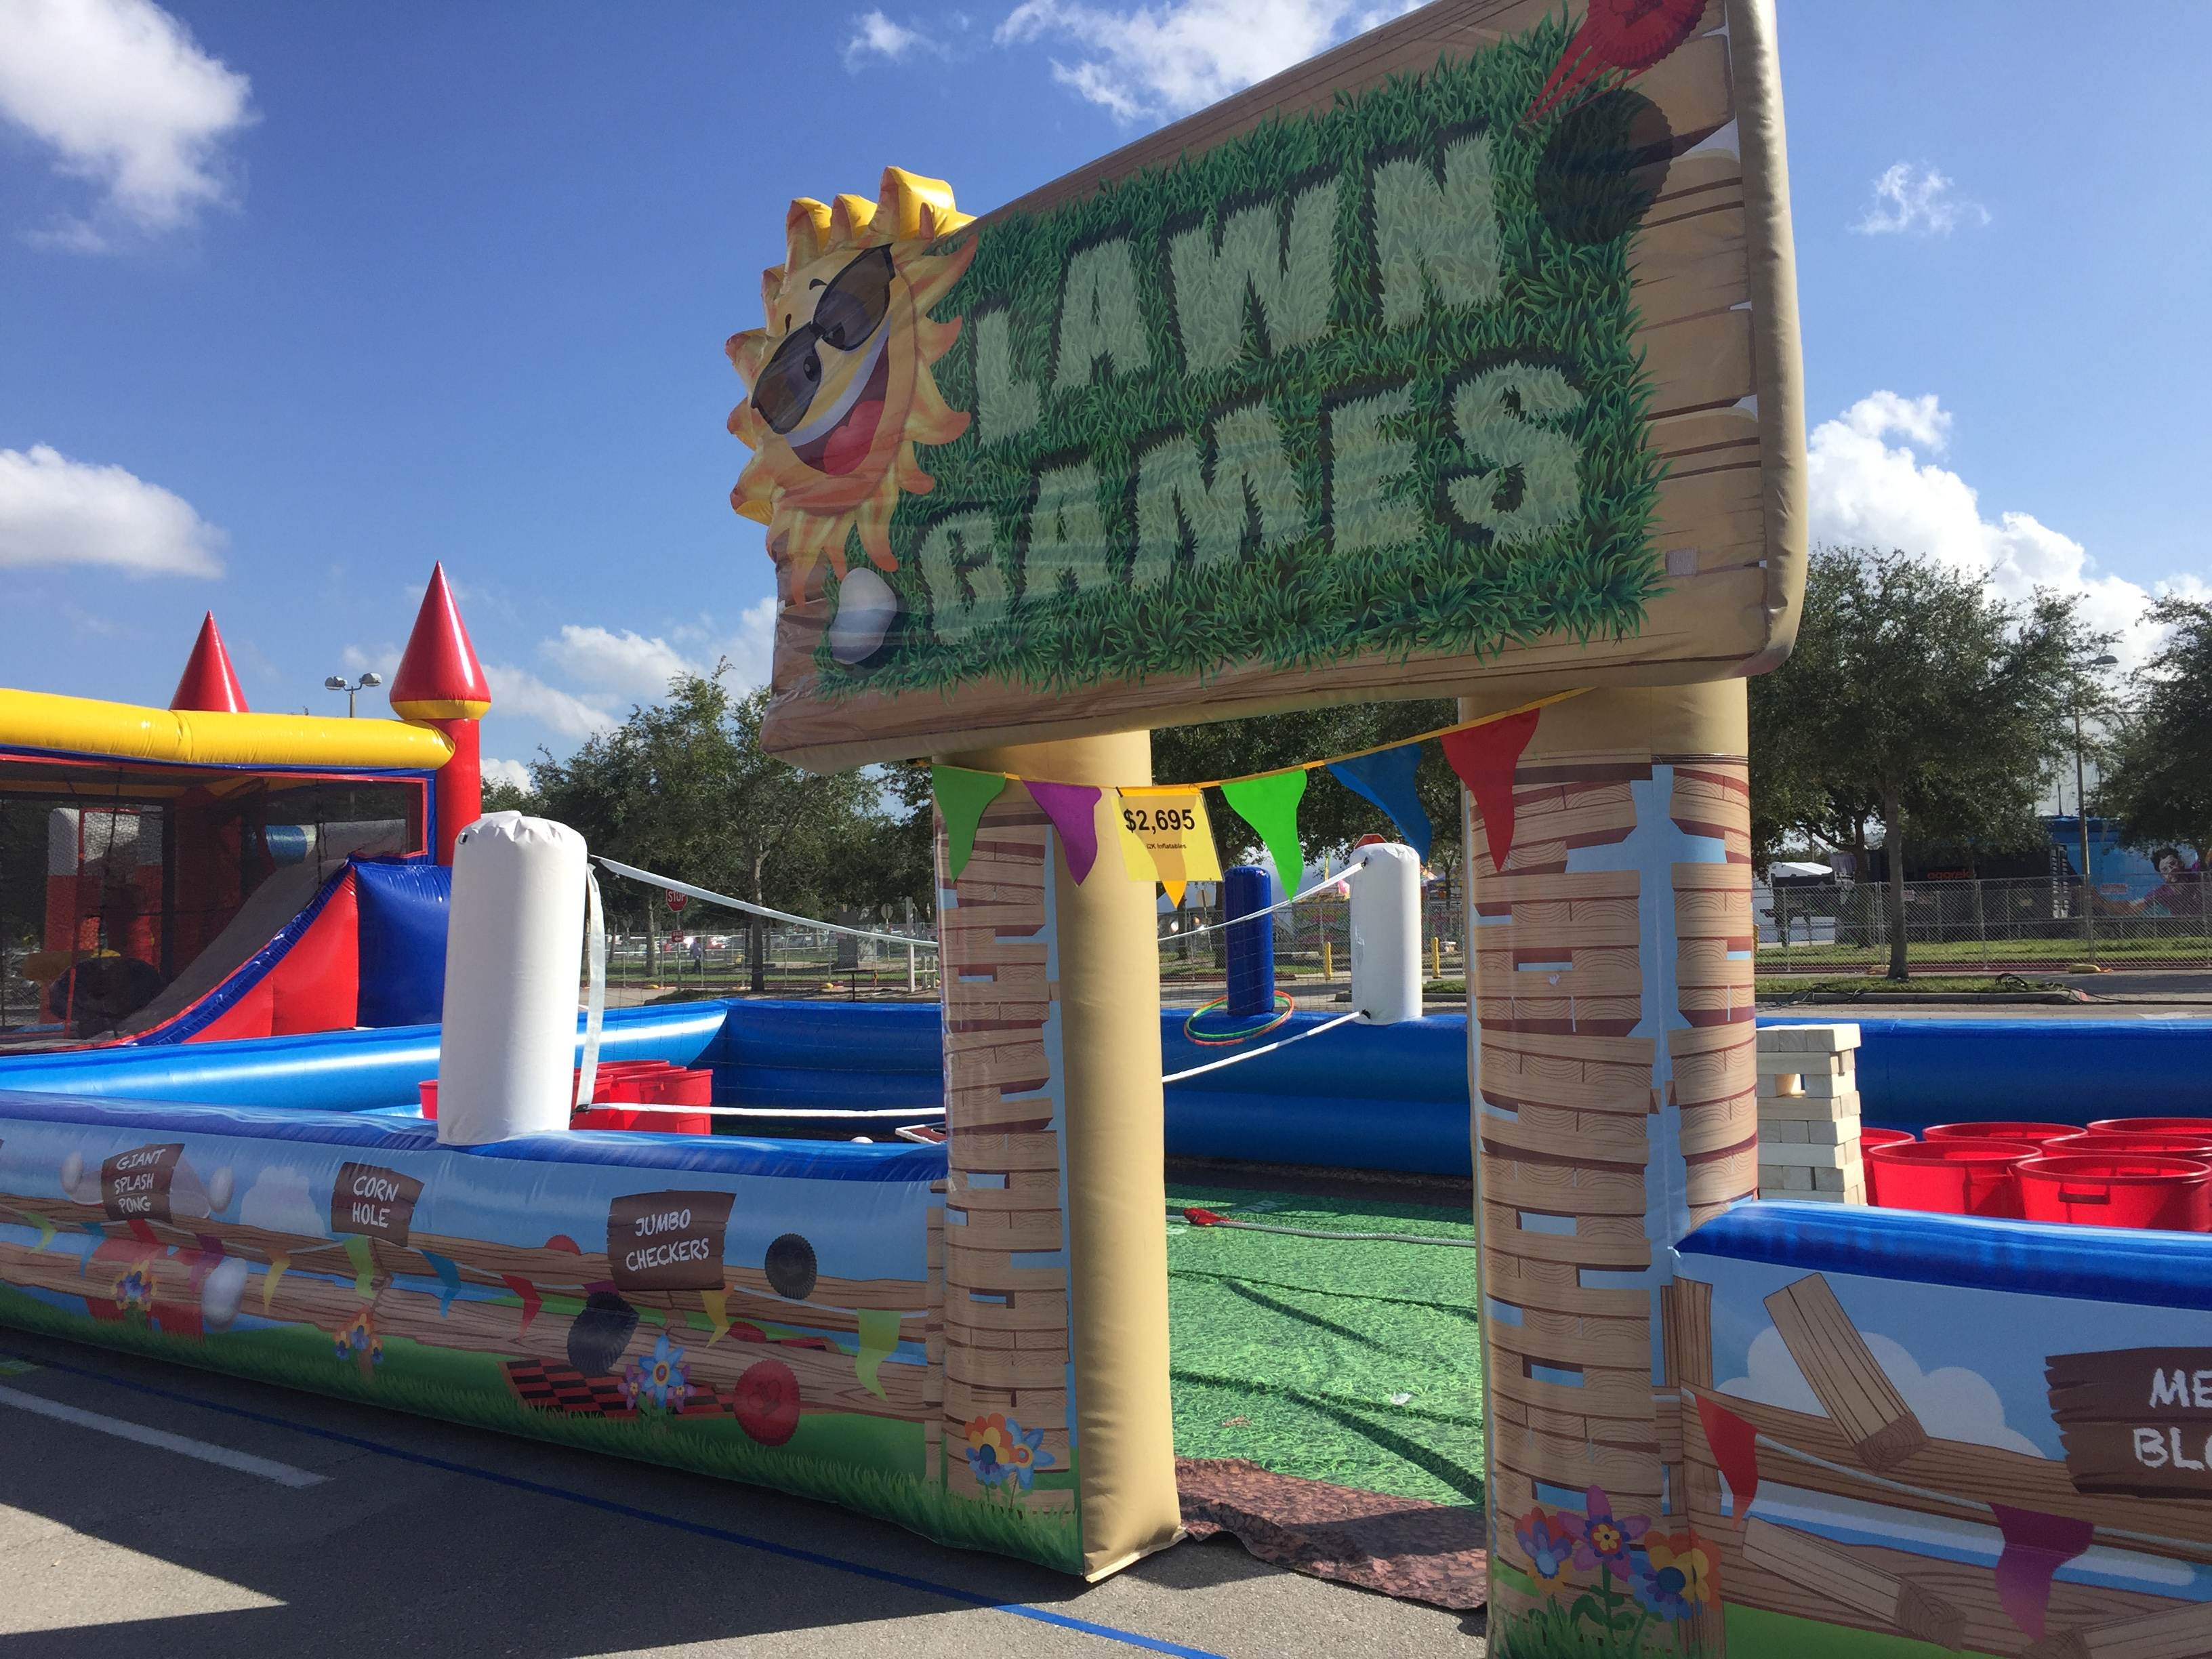 Lawn Games Arena